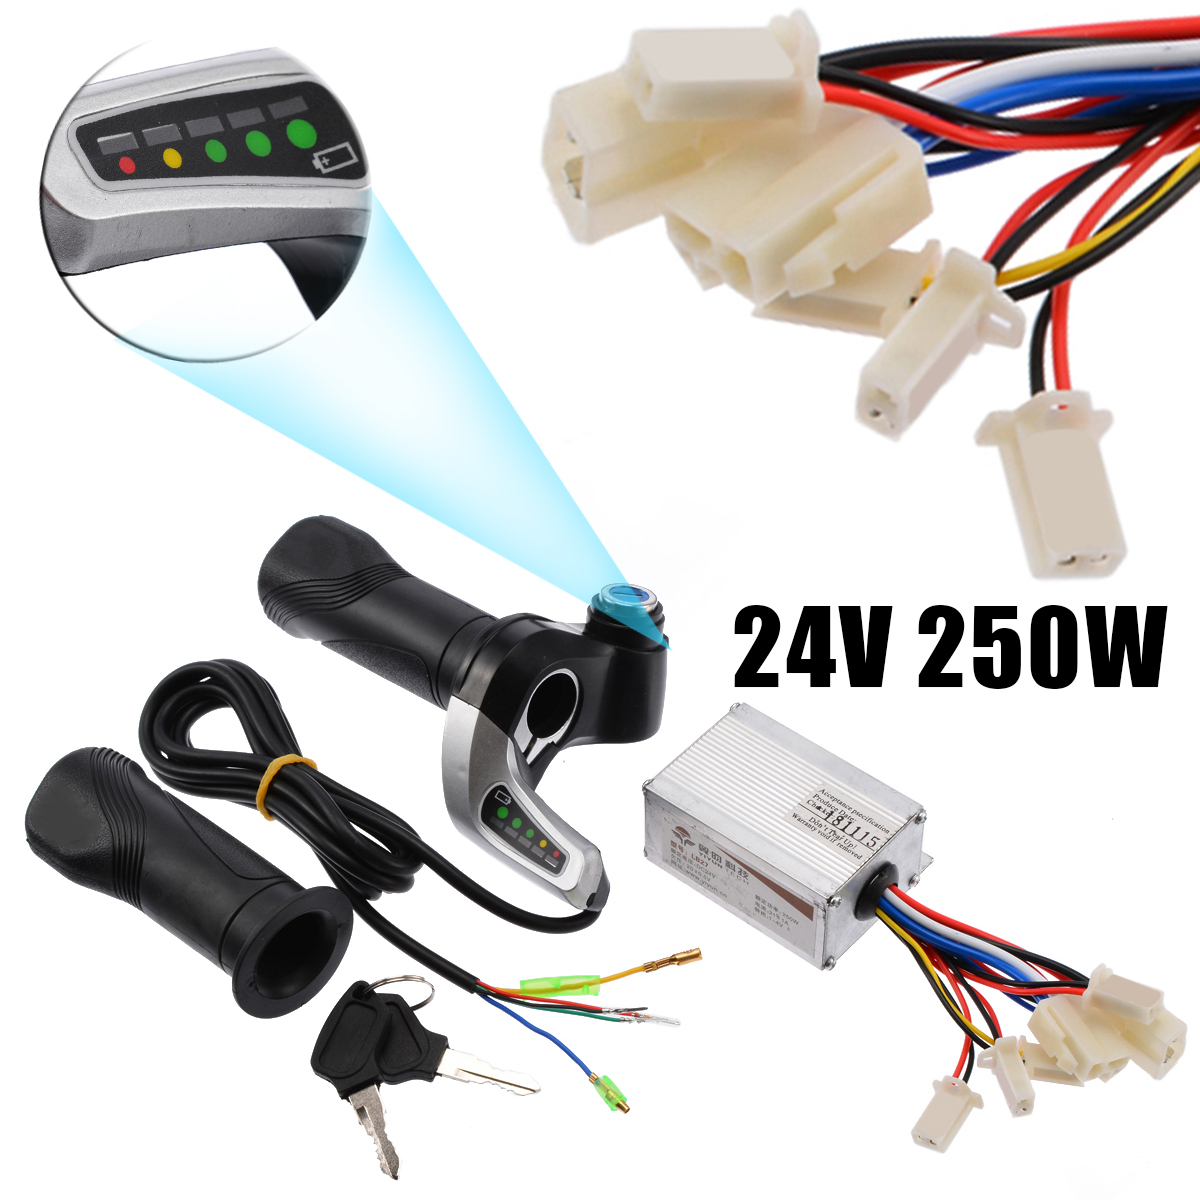 Controller Throttle 24V 250W Motorcycle Brush Speed Controller with Yellow Throttle Grip Kit